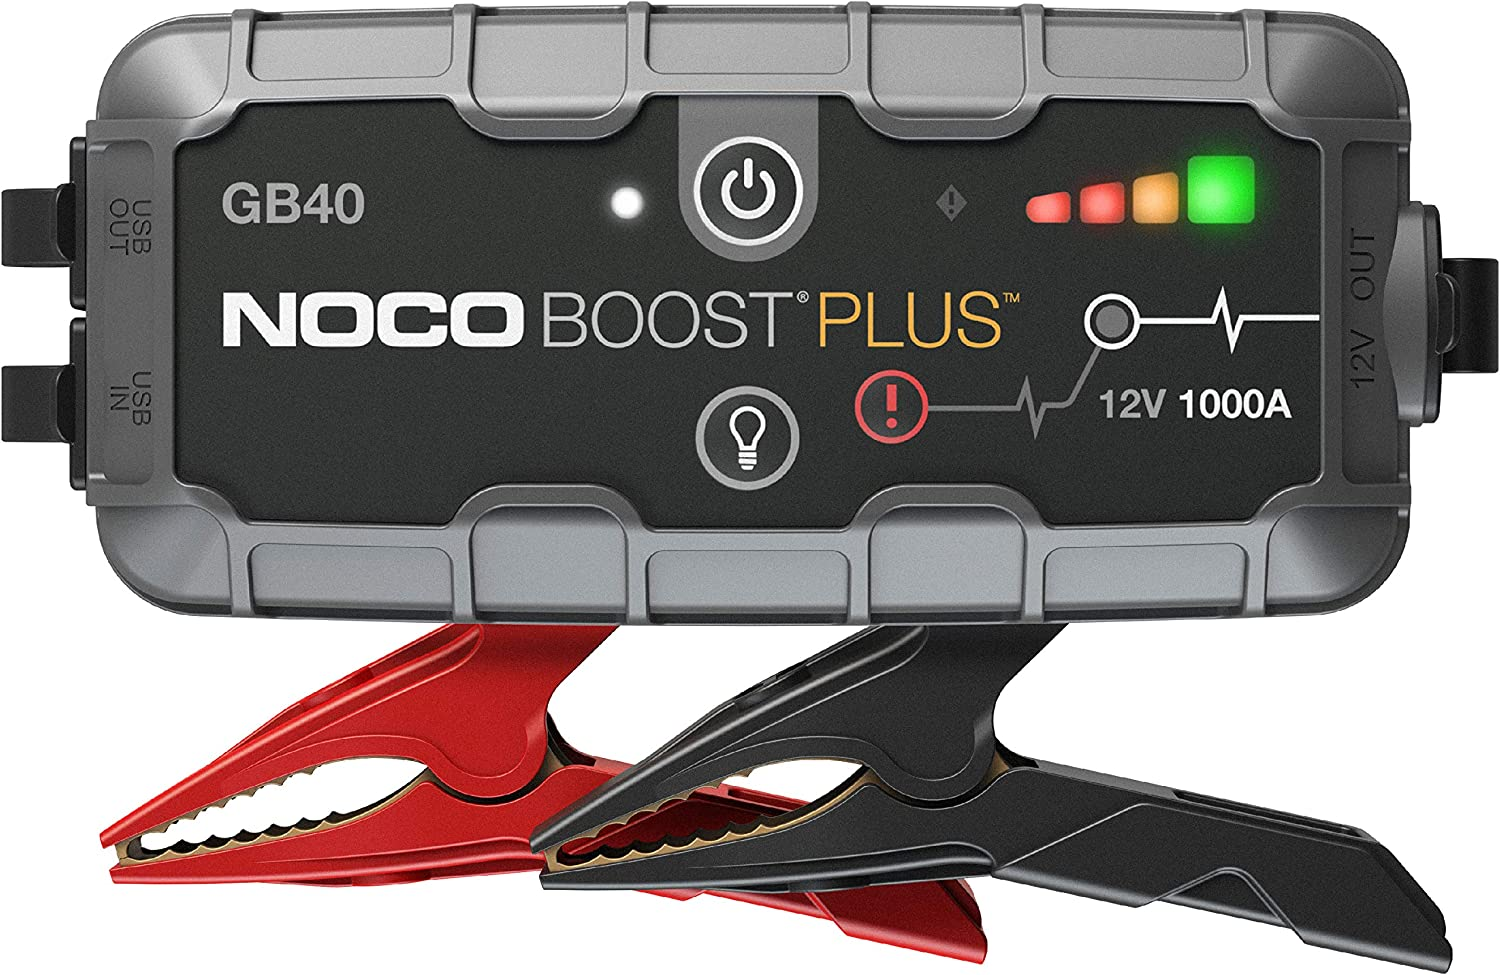 NOCO Boost Plus 1000 Amp 12-Volt UltraSafe Portable Lithium Car Battery Jump Starter